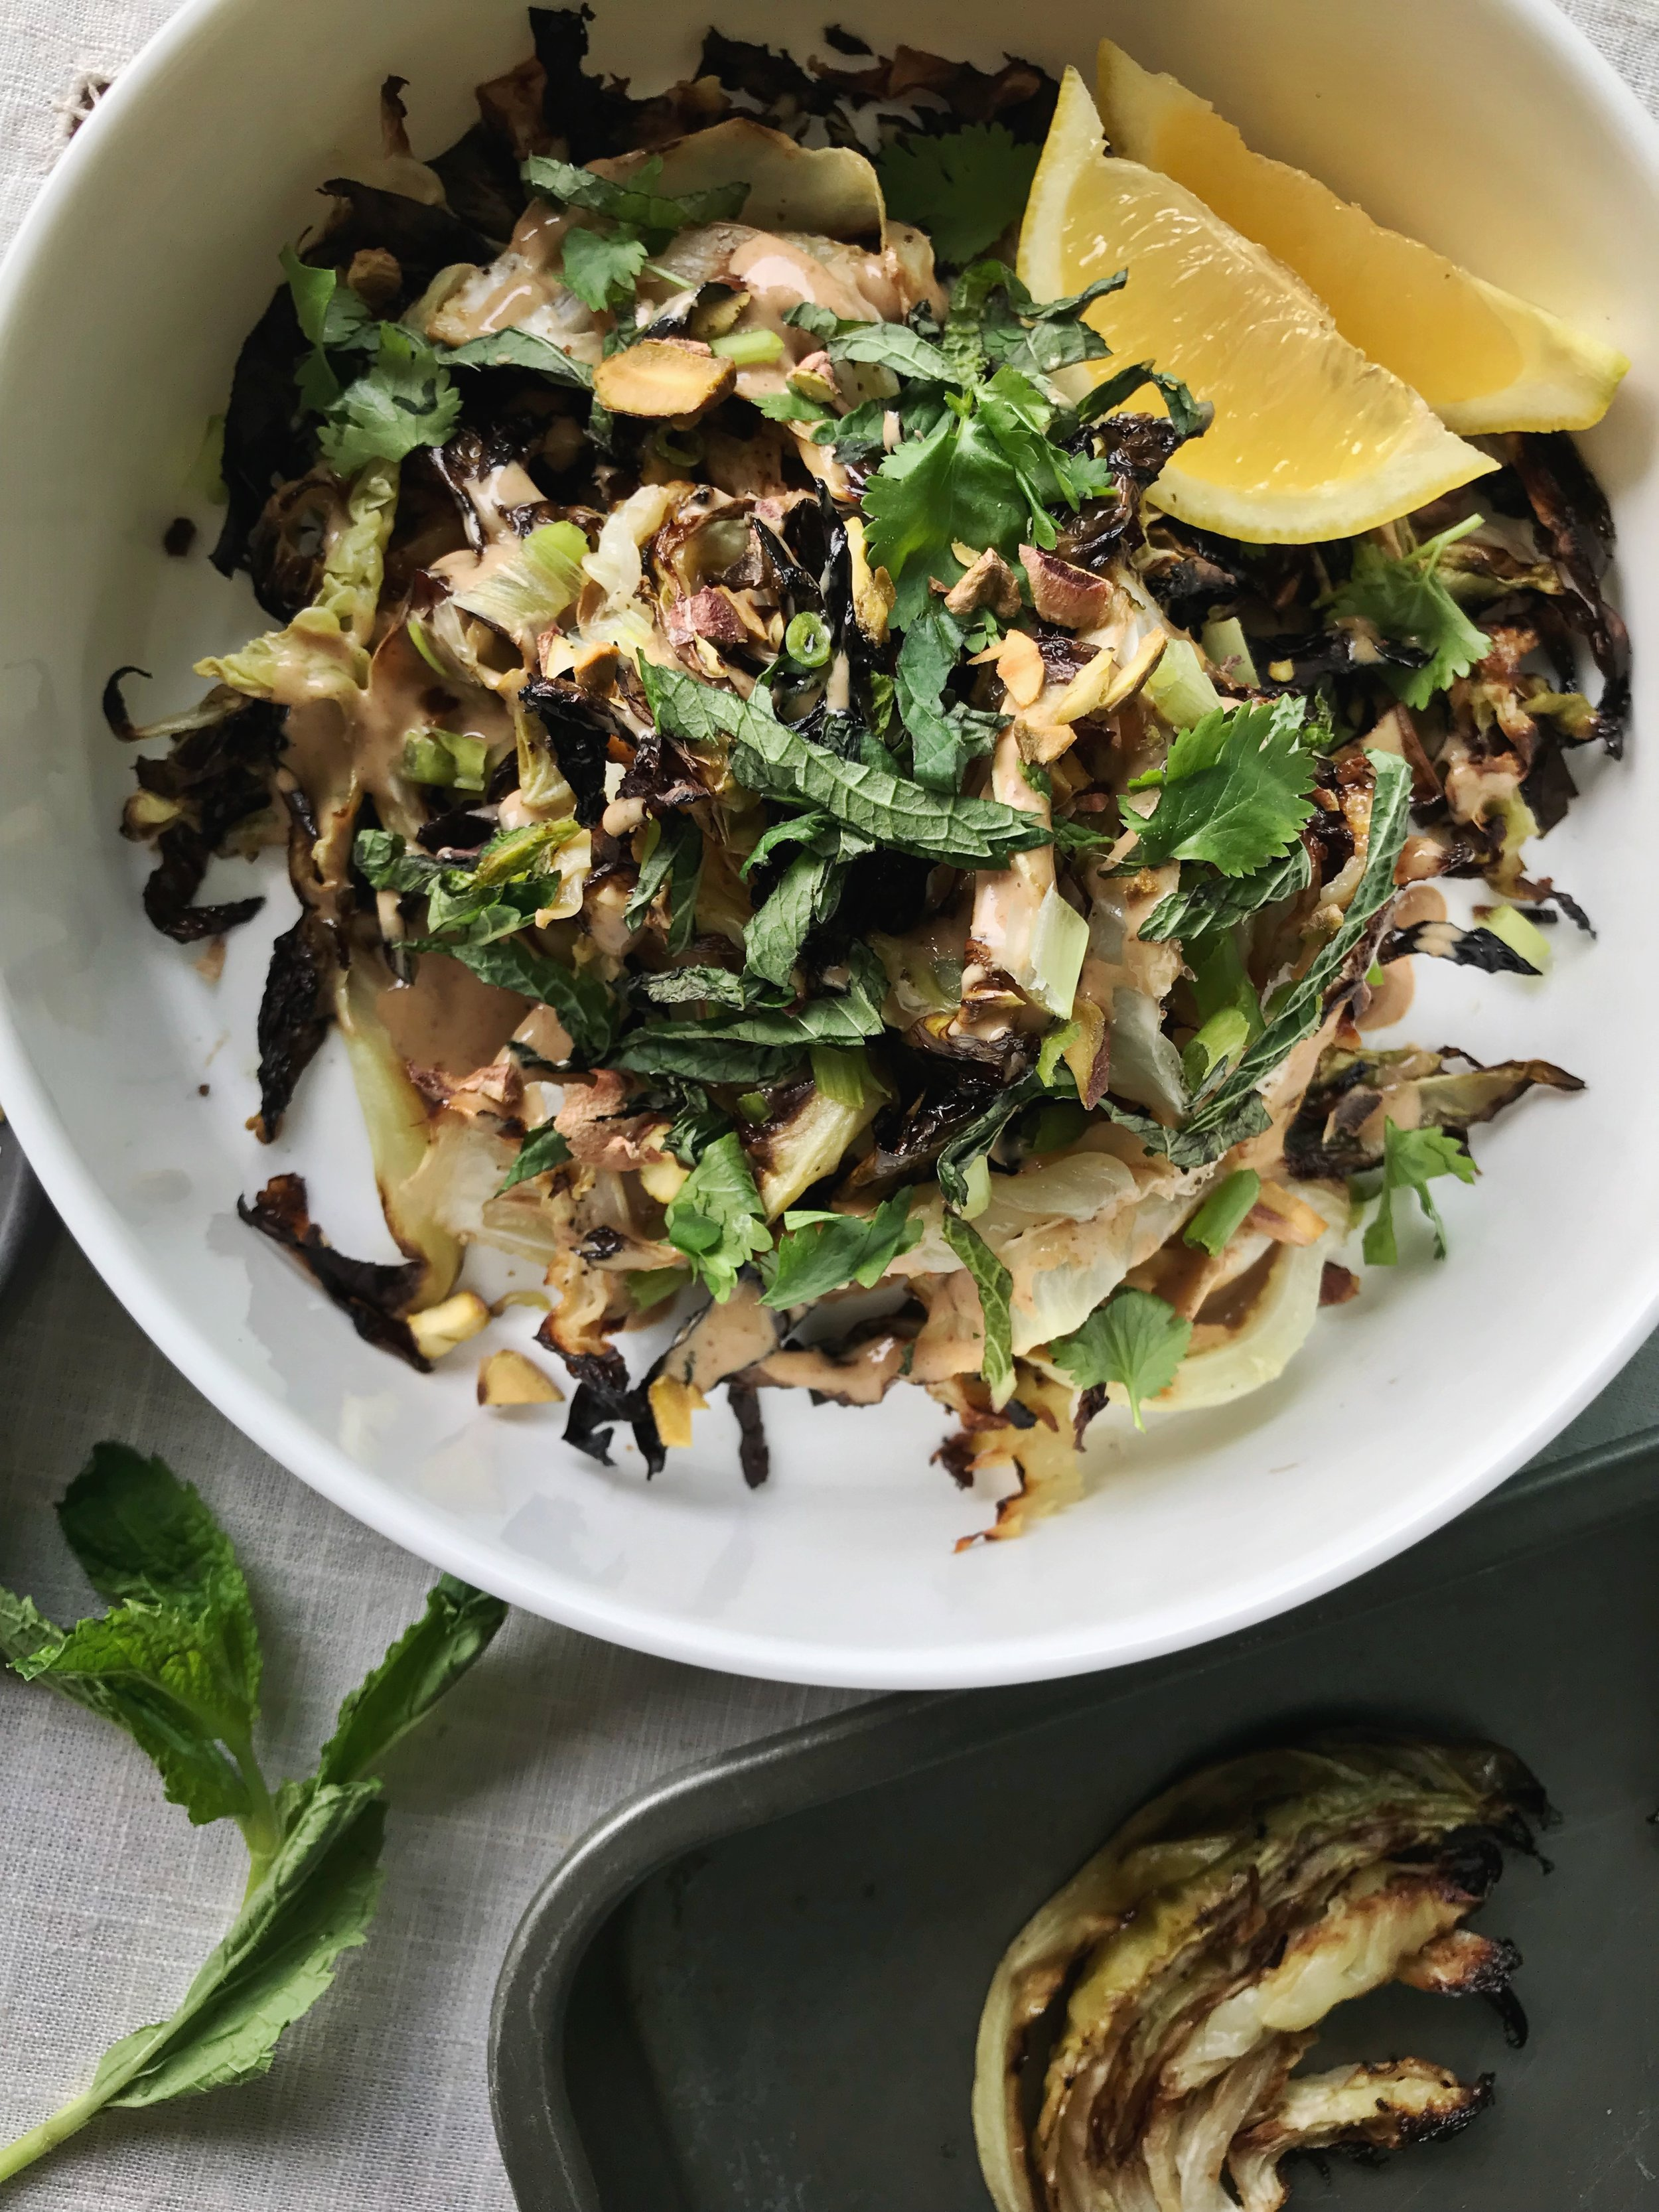 24hourkitchen-recipes-vegetarian-whole30-roasted-cabbage-herbed-almond-sauce